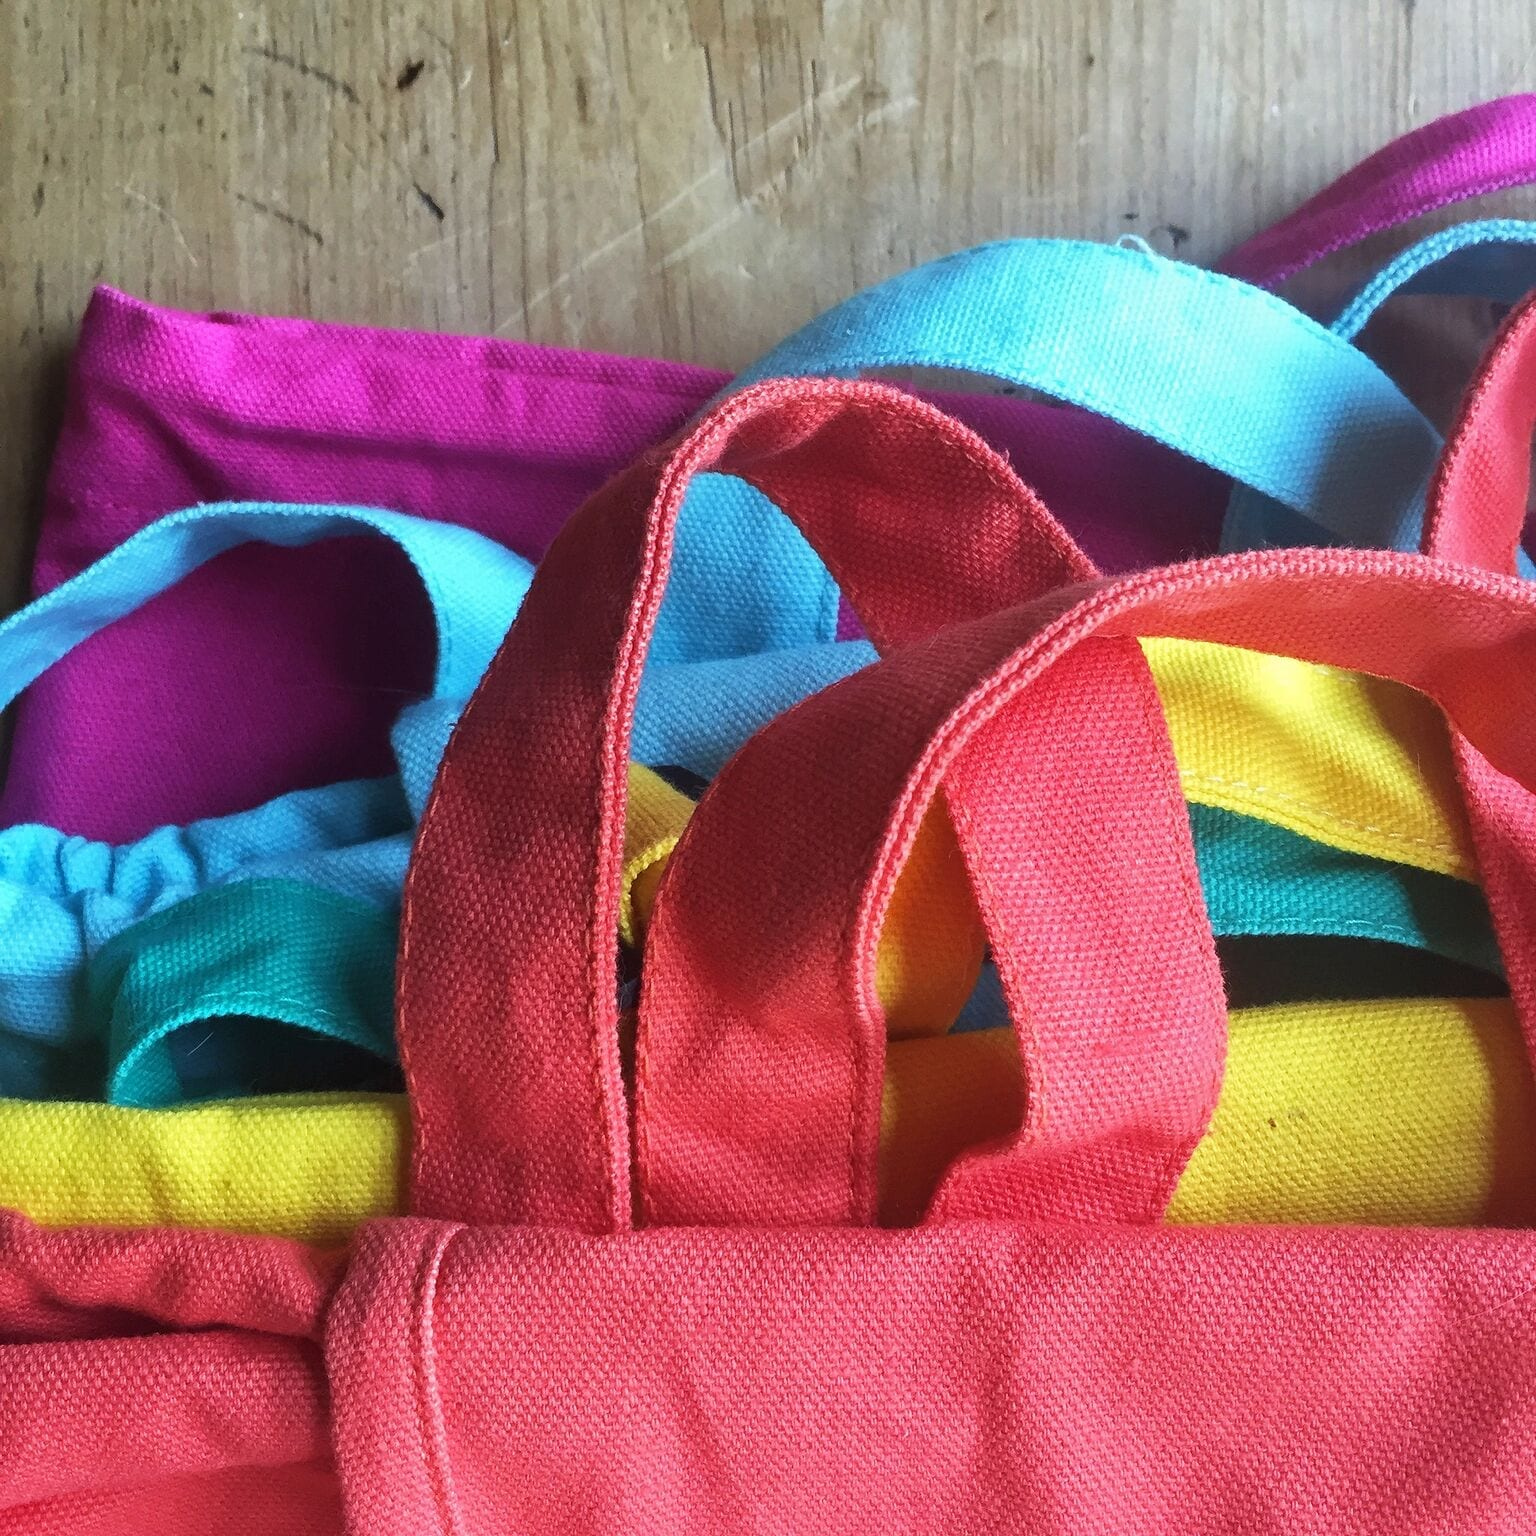 Plastic Free Promotional Bags for Your Business